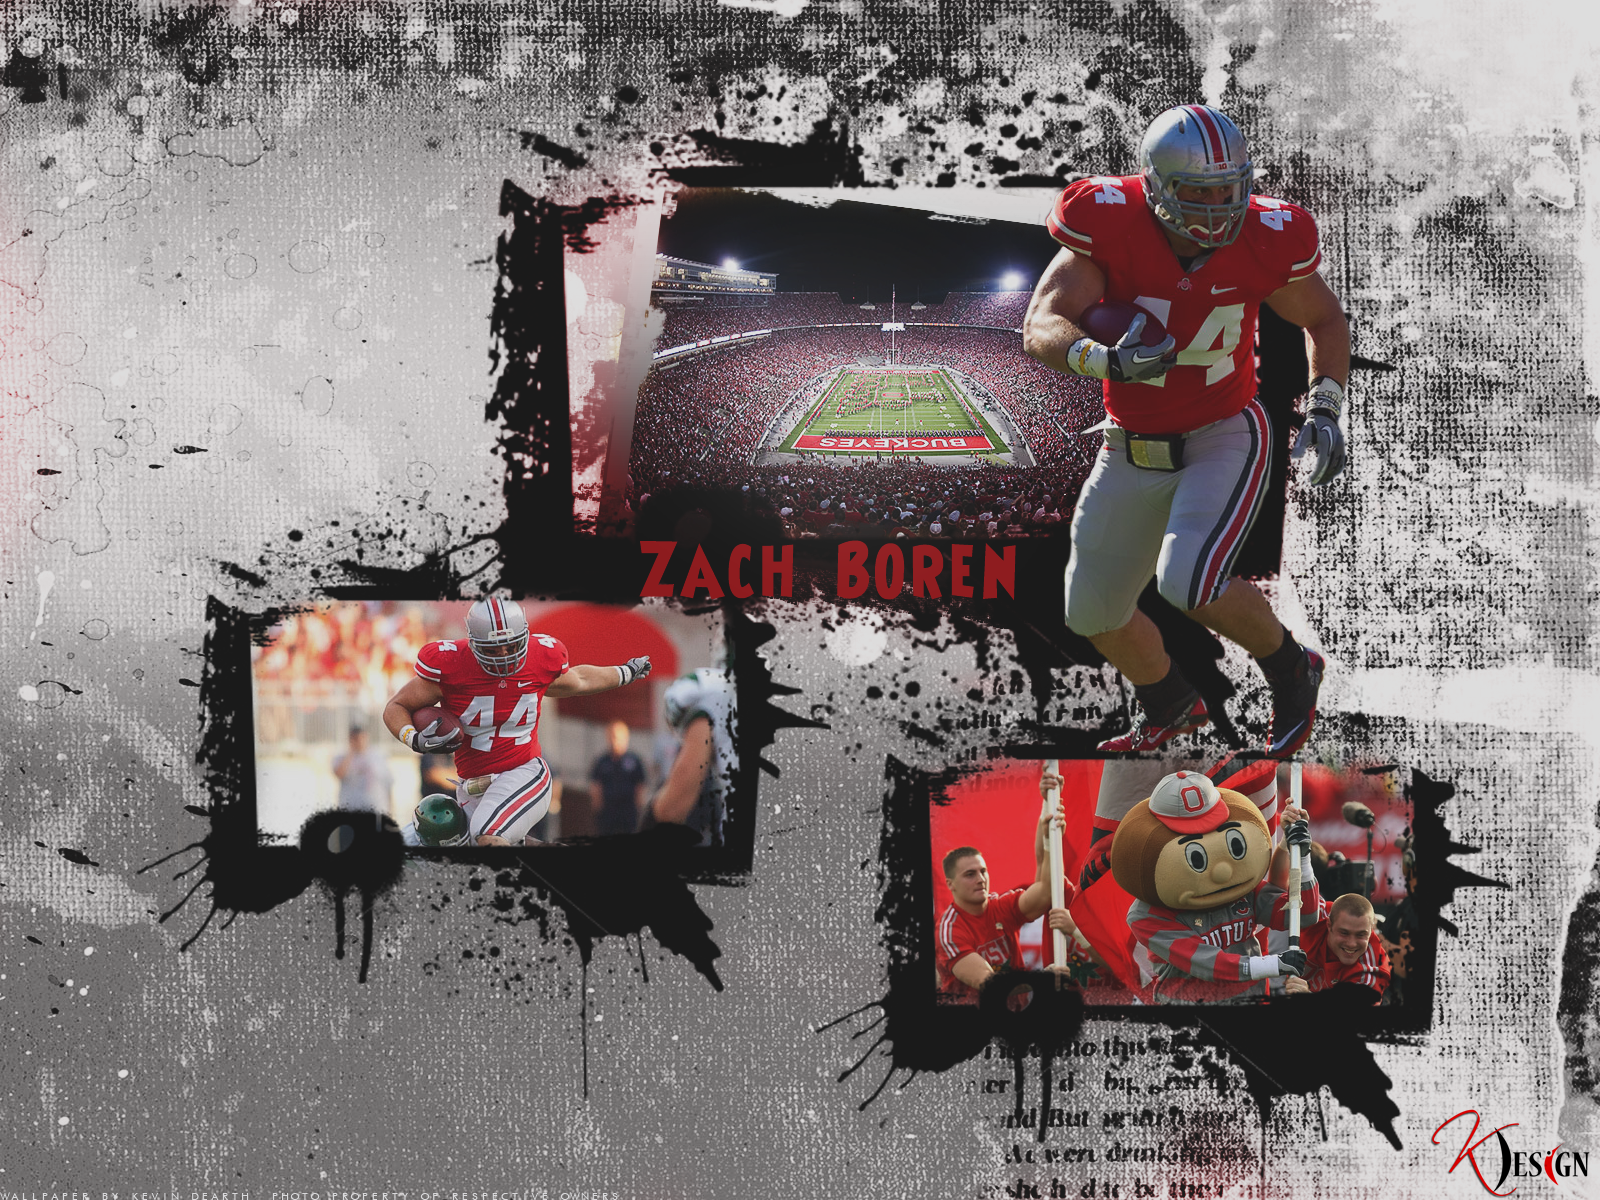 Zach Boren Wallpaper by KevinsGraphics